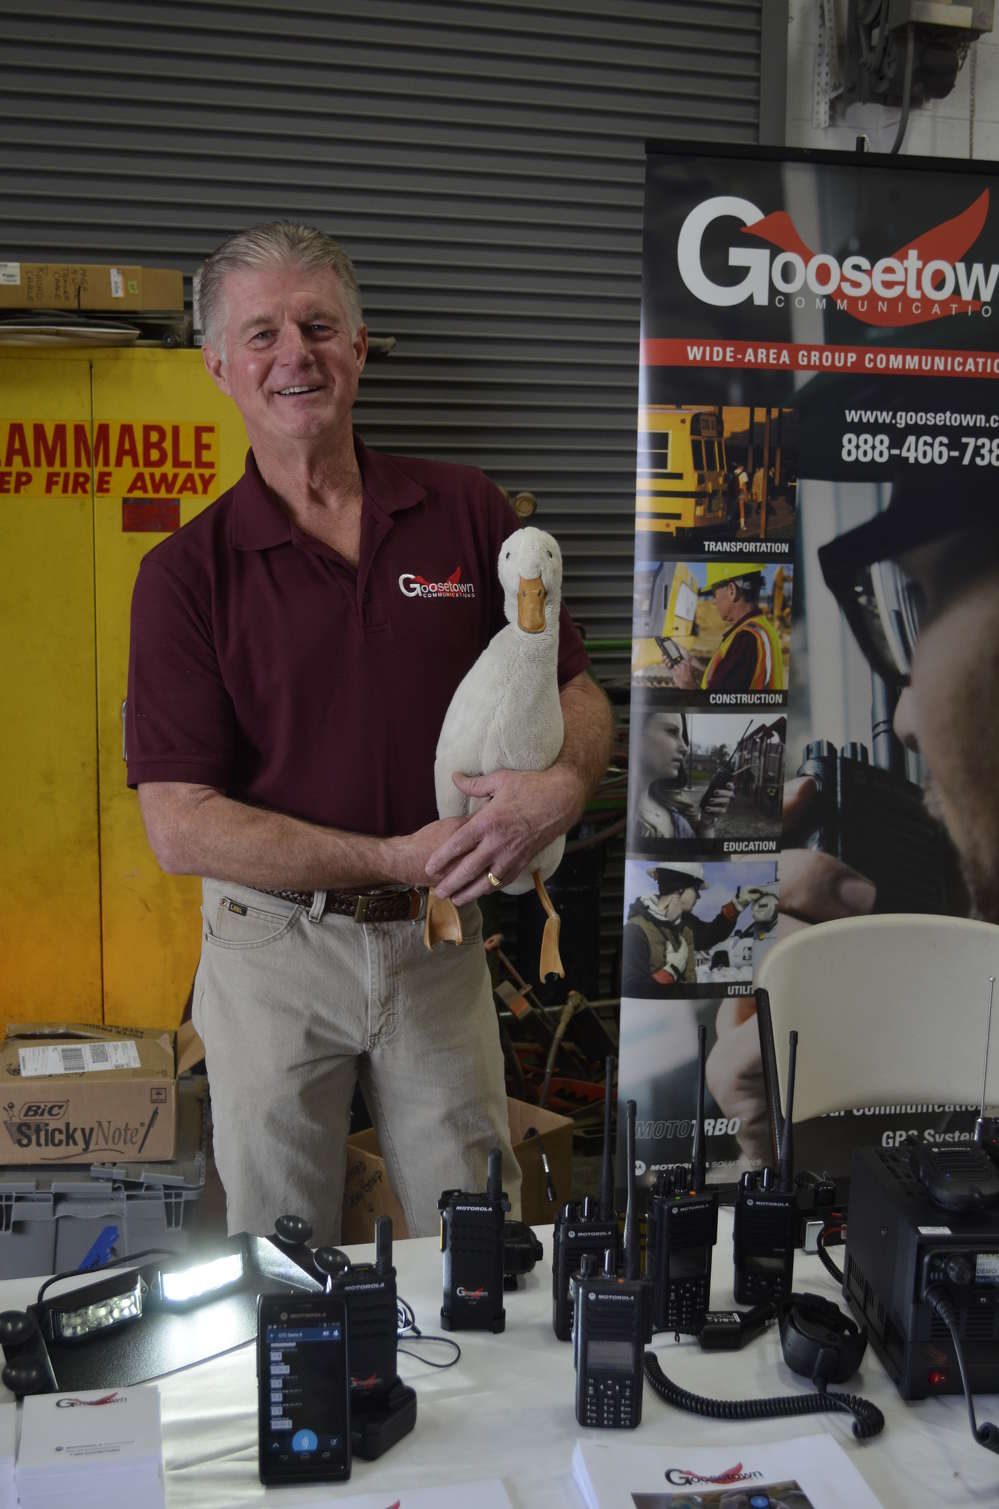 Dave DeJong of Goosetown Communications, along with his pet duck mascot, explained to attendees the wide variety of Motorola Communications solutions his company has available.